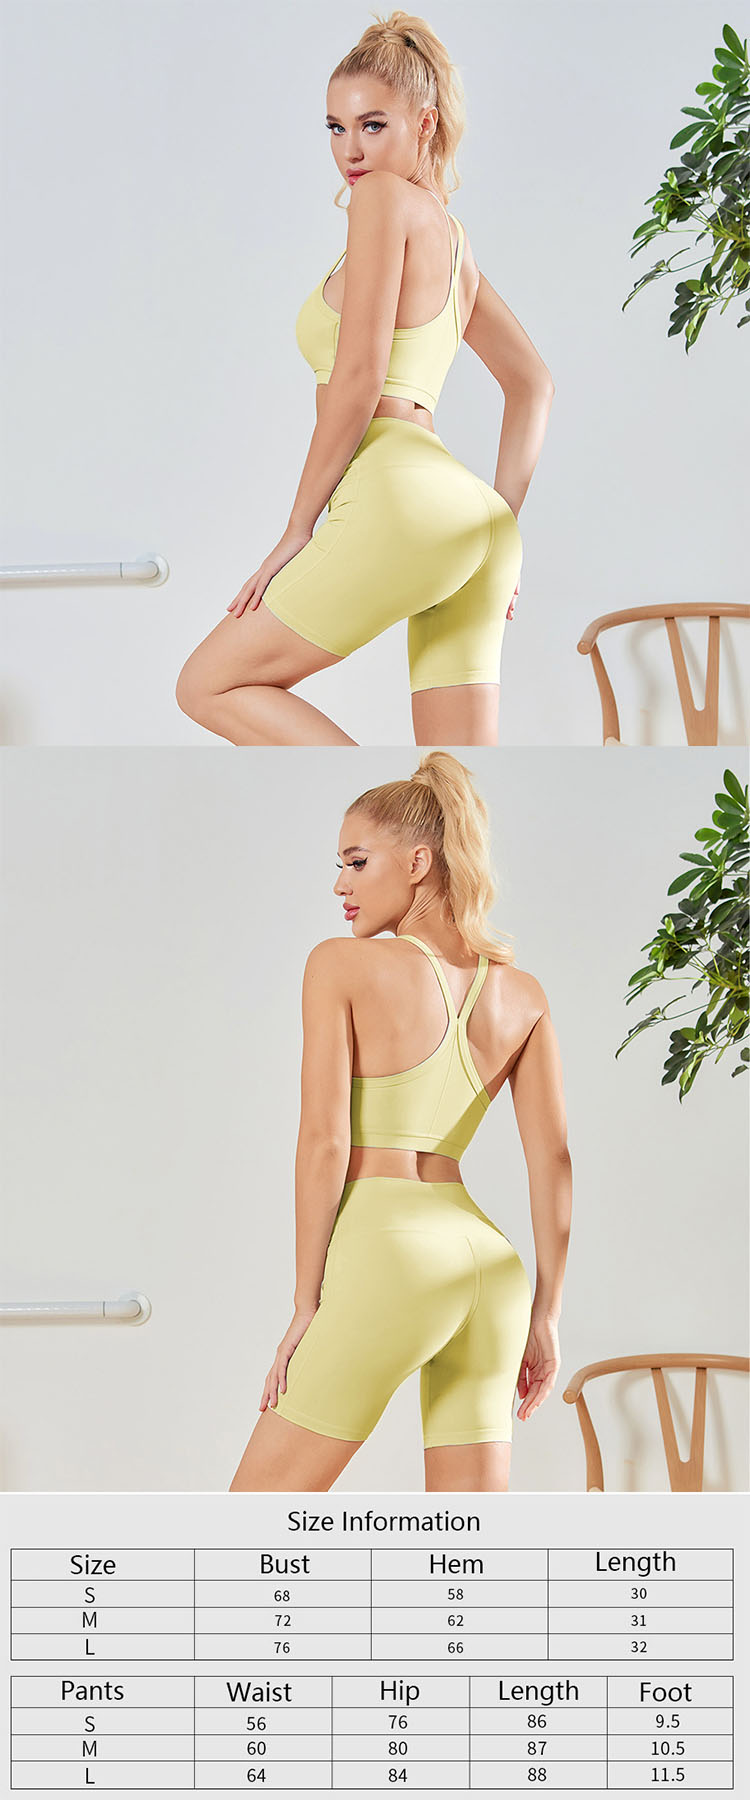 Light and smooth, elastic on all sides, skin-friendly and comfortable.